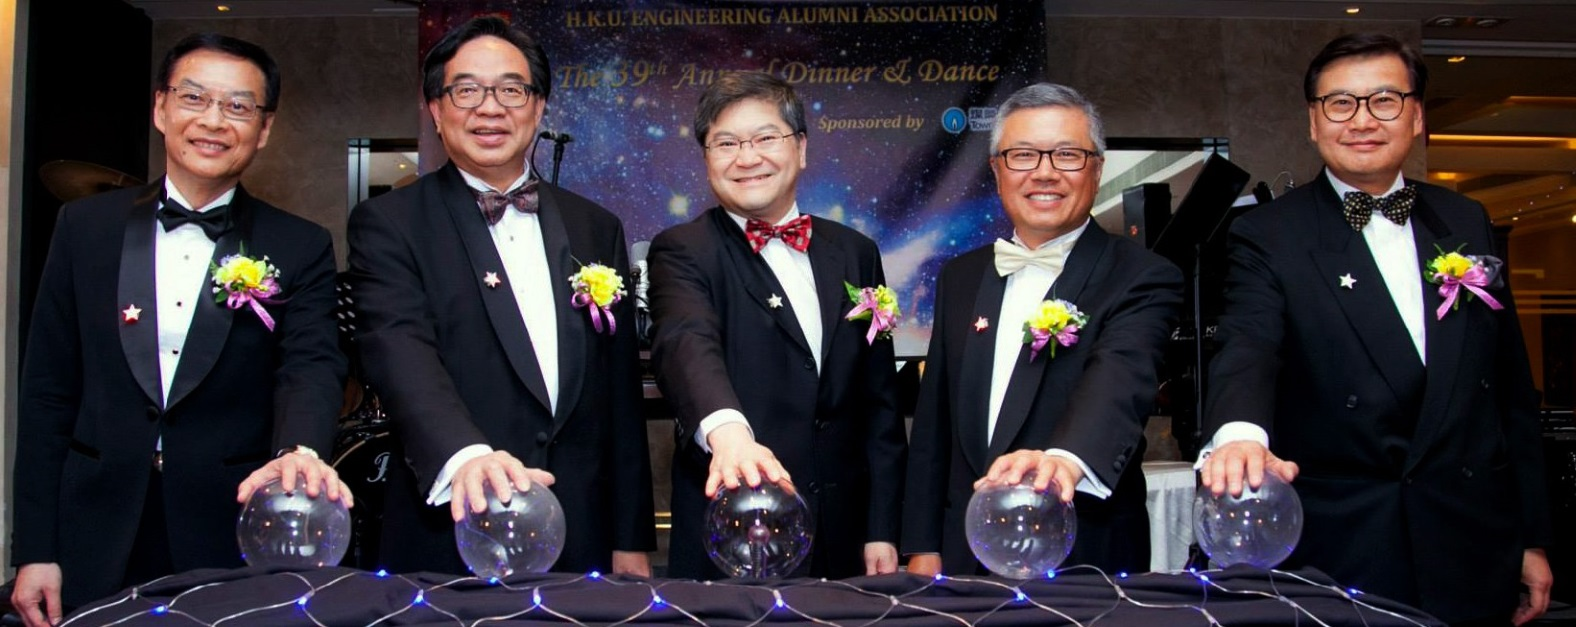 (left to right) Ir WAI Chi Sing (14/15 President of HKUEAA), Ir LO Wai Kwok (1991-1992 President of HKUEAA), Dean of Engineering, Mr. Vincent Cheung ()